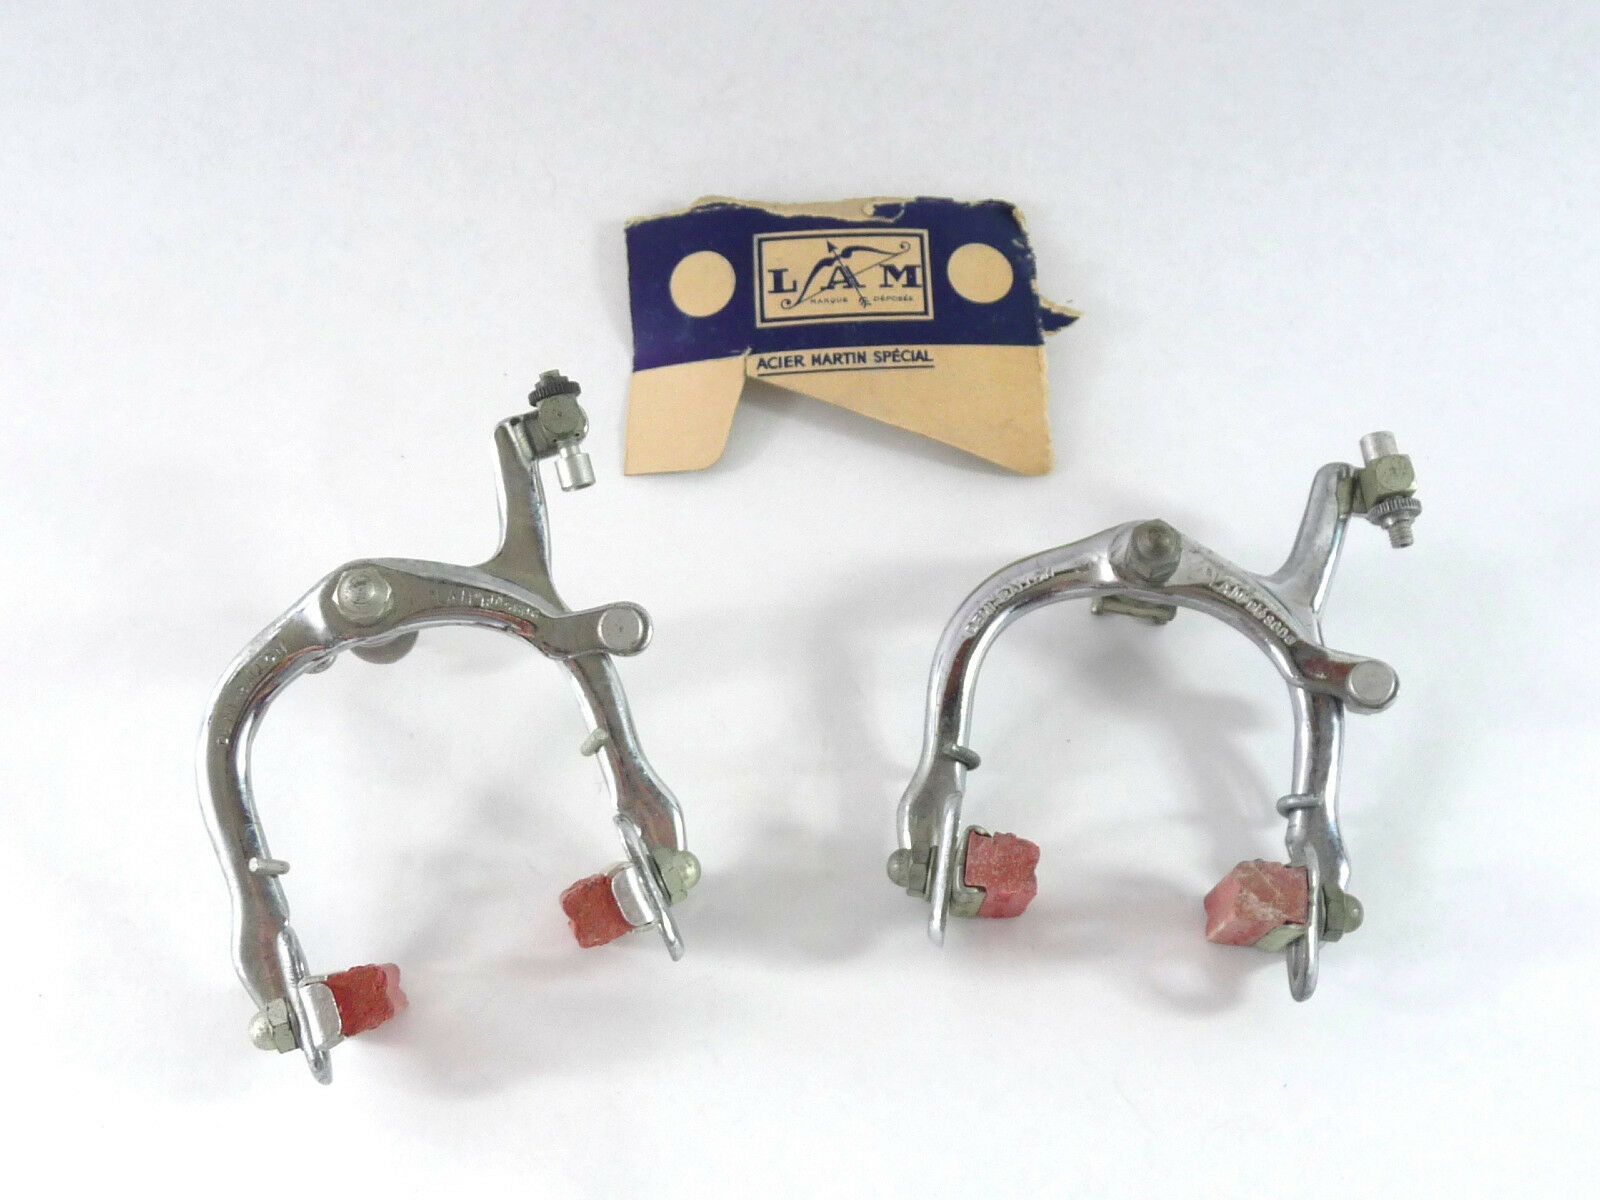 Lam  Brake Calipers 1940'S 70-95mm Vintage touring Bike long Reach LAST SET  NOS  outlet online store